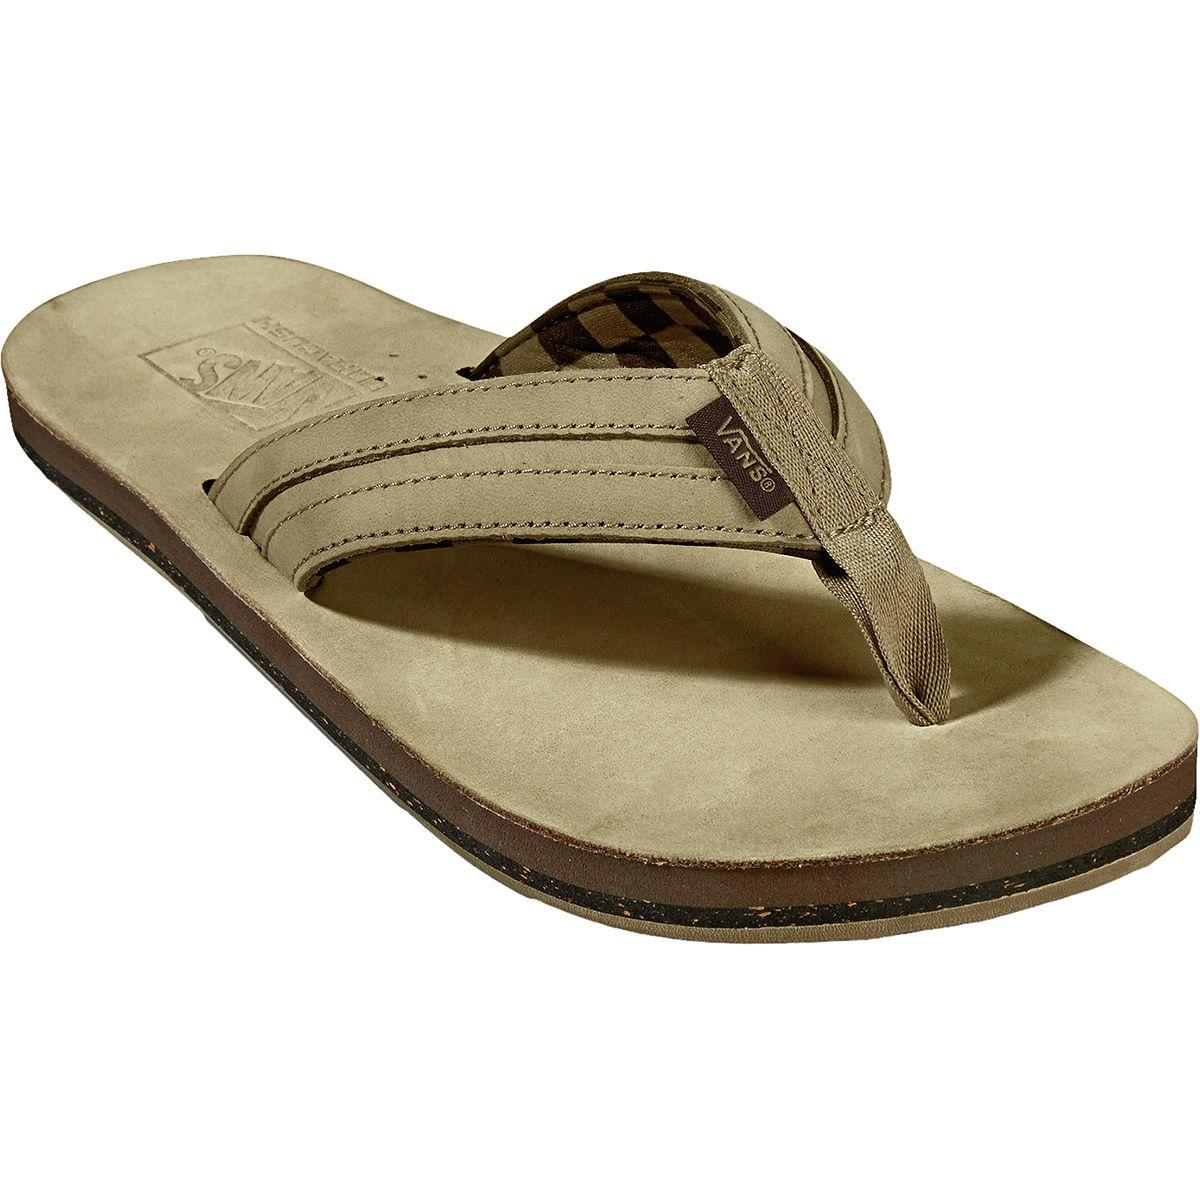 aeb7716907a5 Lyst - Vans Nexpa Lx2 Flip Flop in Brown for Men